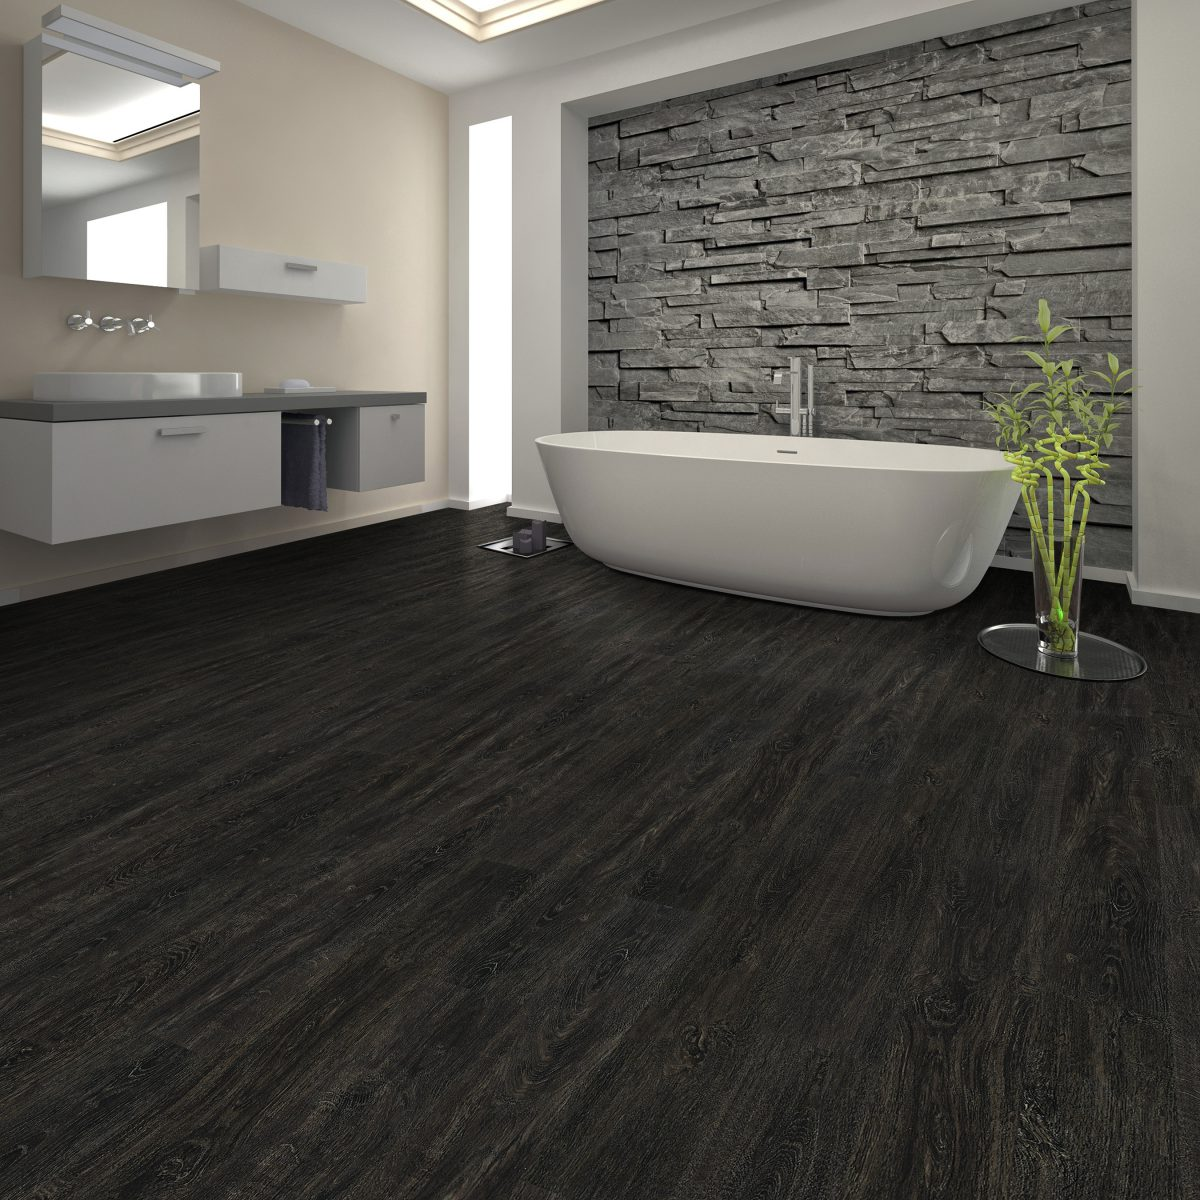 kitchen vinyl flooring latest designs 5 options for kitchens and bathrooms empire today blog